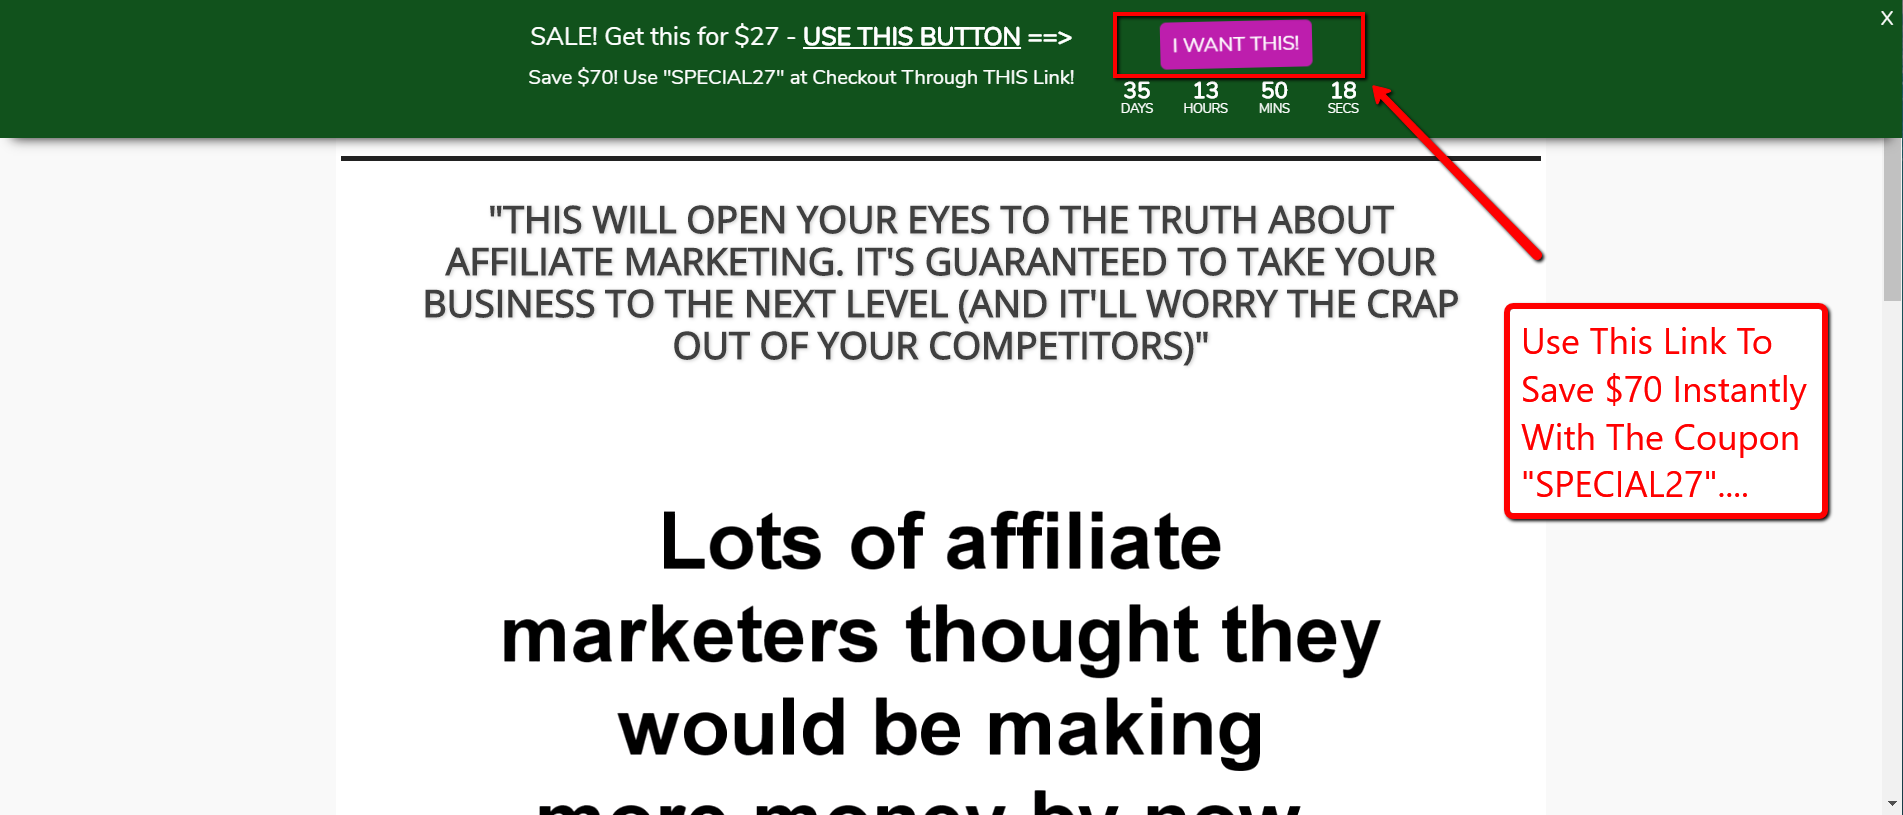 2019 12 27 1909 001 - Affiliate Programs That Work - Follow This Advice and Earn More Commissions